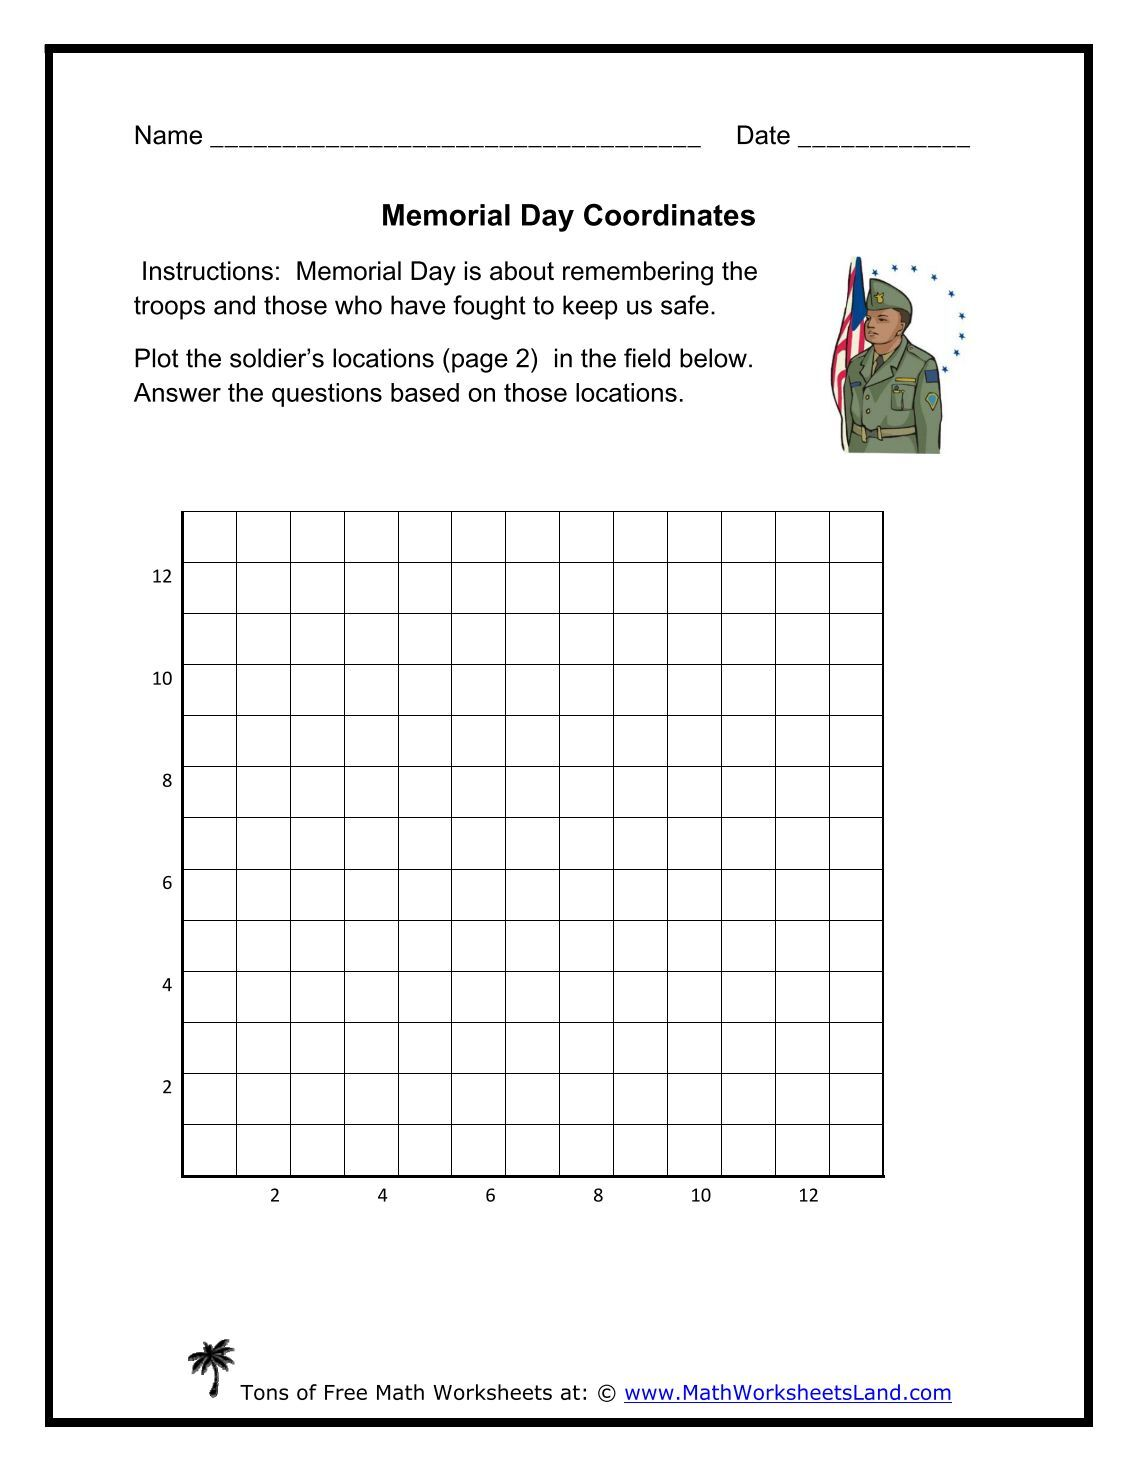 260 free Magazines from MATHWORKSHEETSLANDCOM – Math Worksheets Land